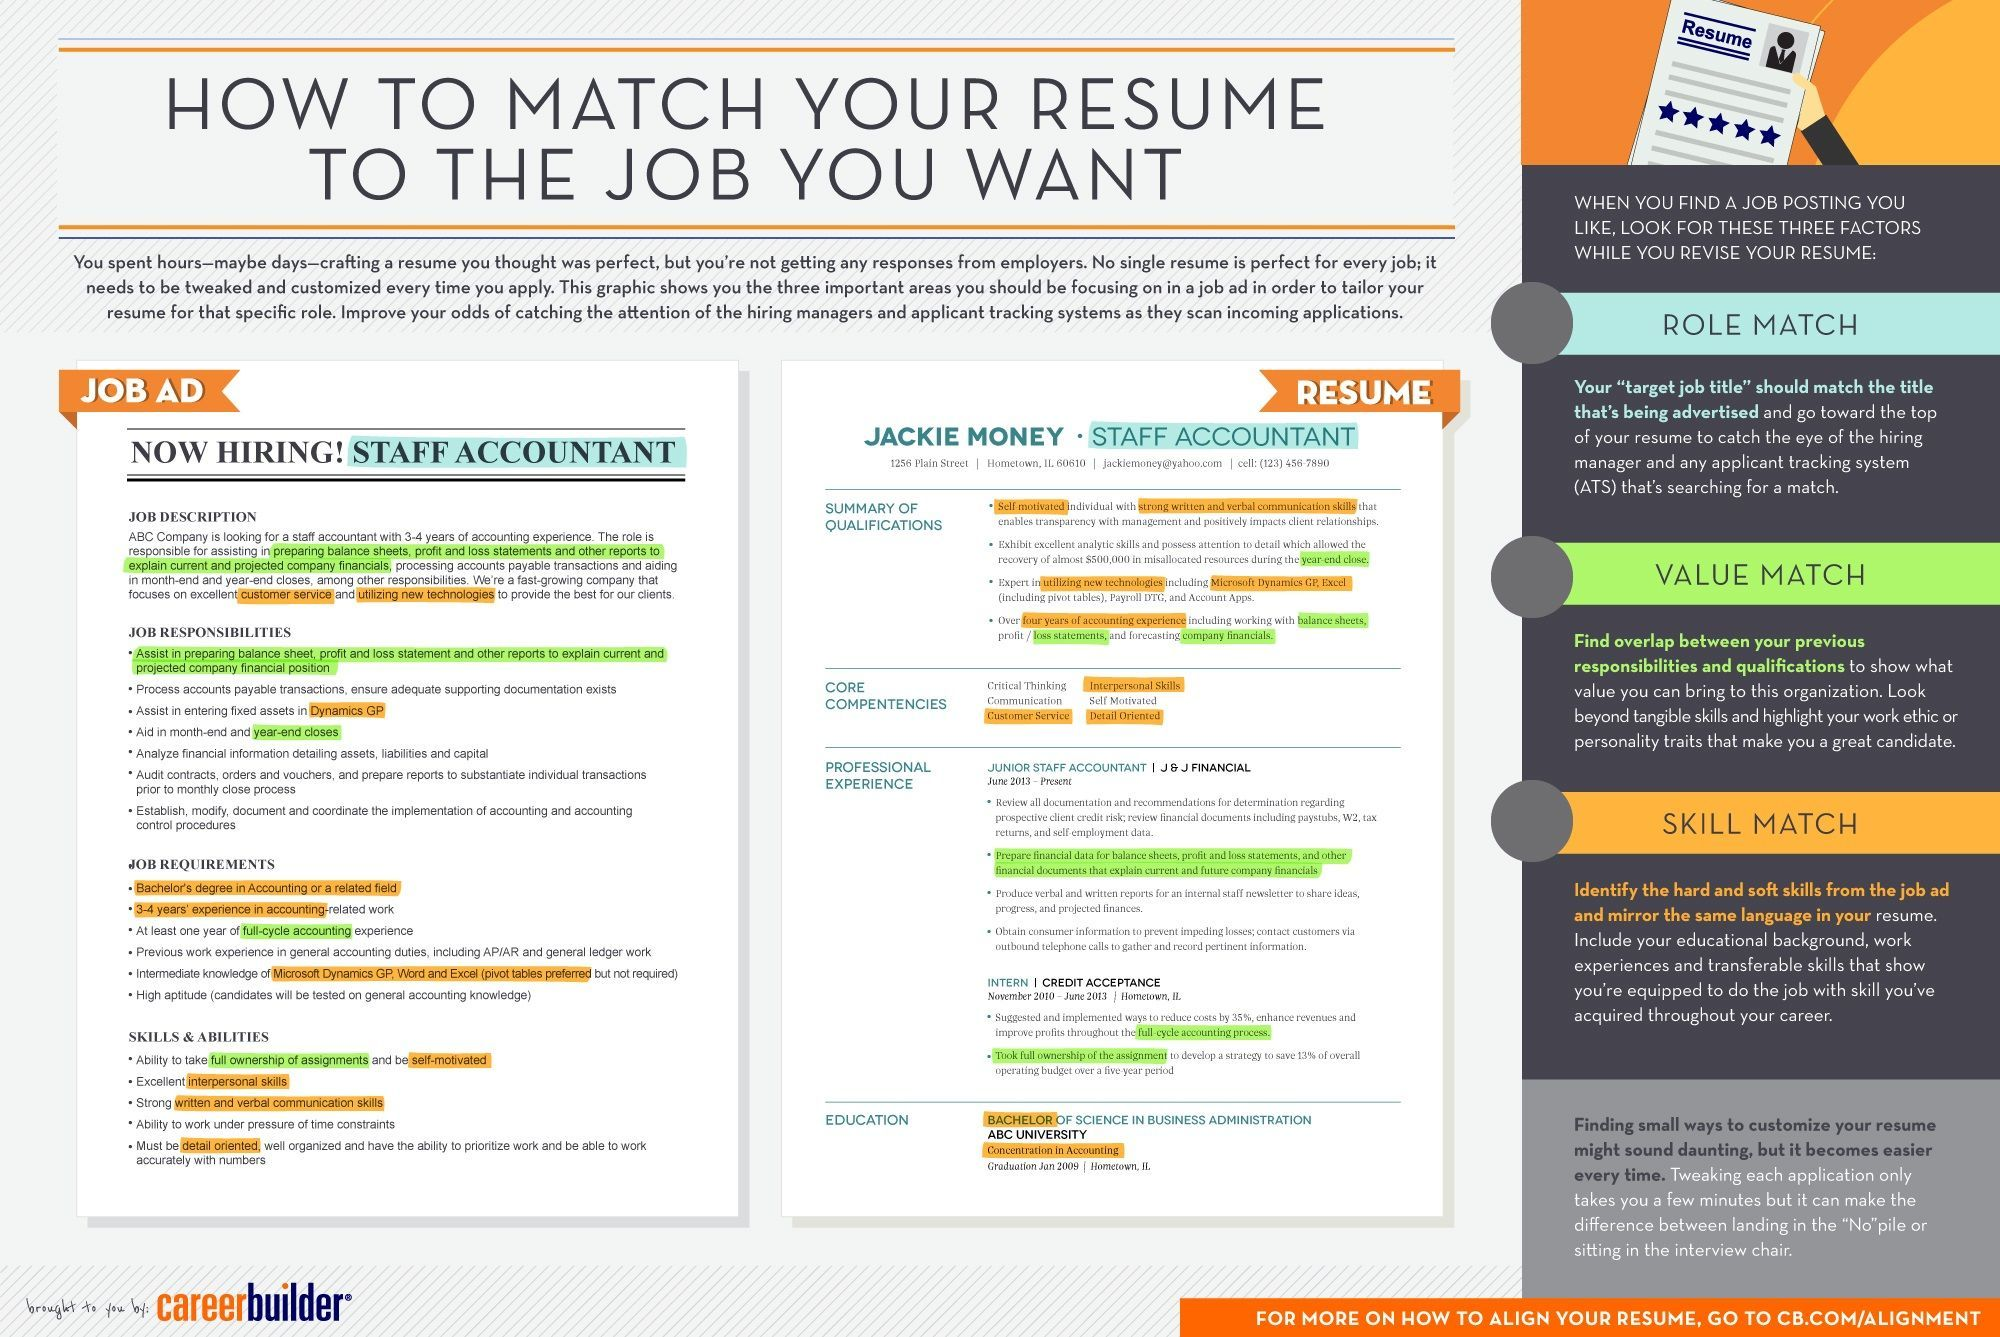 17 best images about resumes on pinterest resume tips job seekers and the muse - Resume Tips